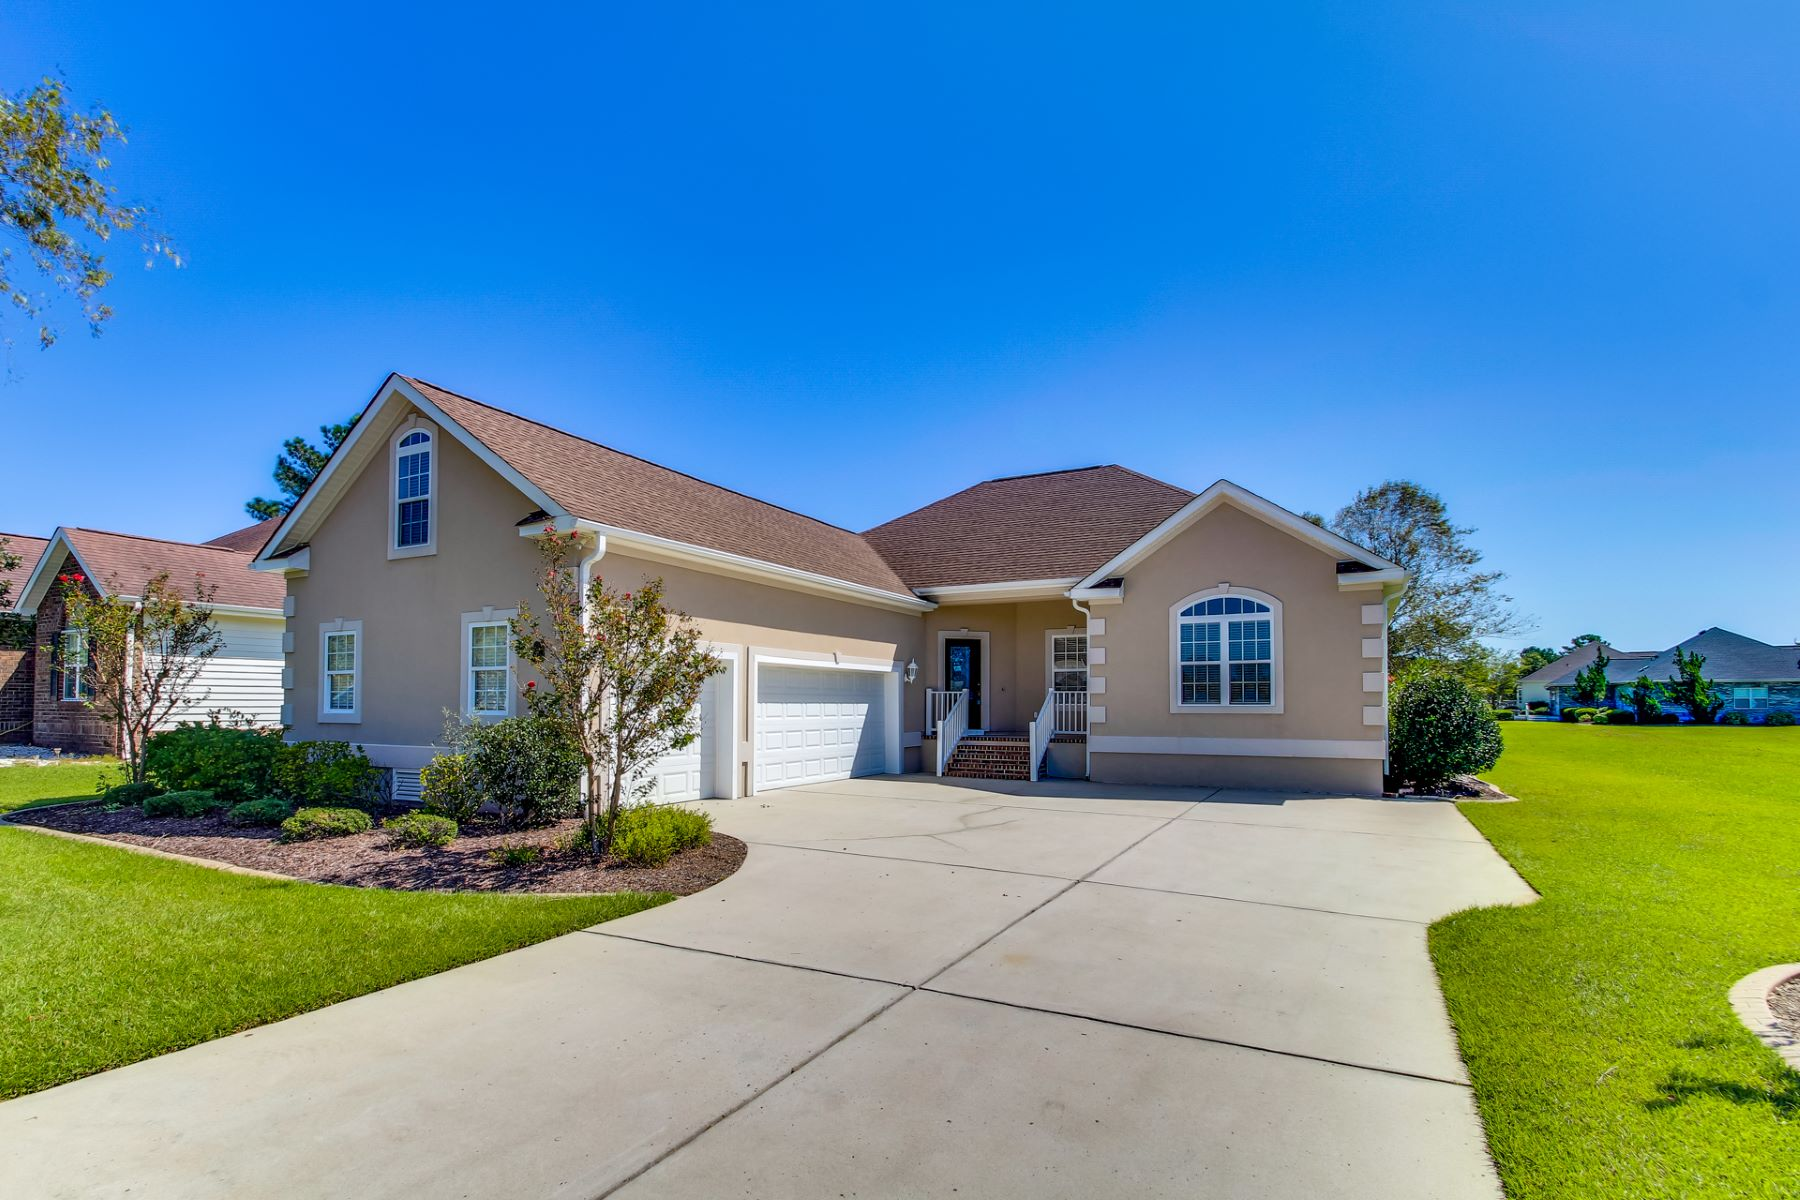 Single Family Homes for Sale at Home in Gated Golf Community 210 Monmouth Drive NW Calabash, North Carolina 28467 United States